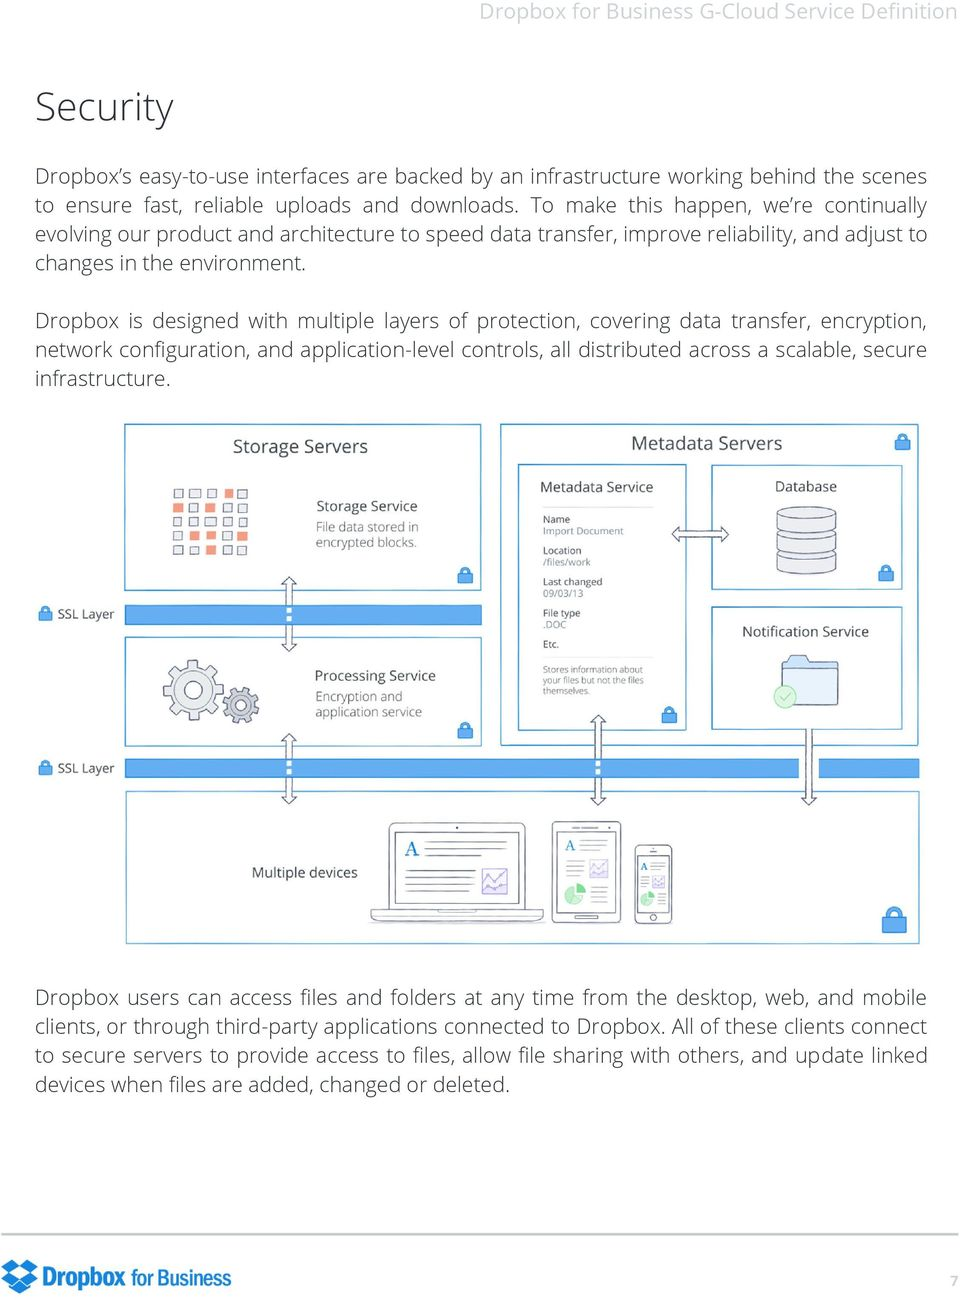 Dropbox is designed with multiple layers of protection, covering data transfer, encryption, network configuration, and application-level controls, all distributed across a scalable, secure